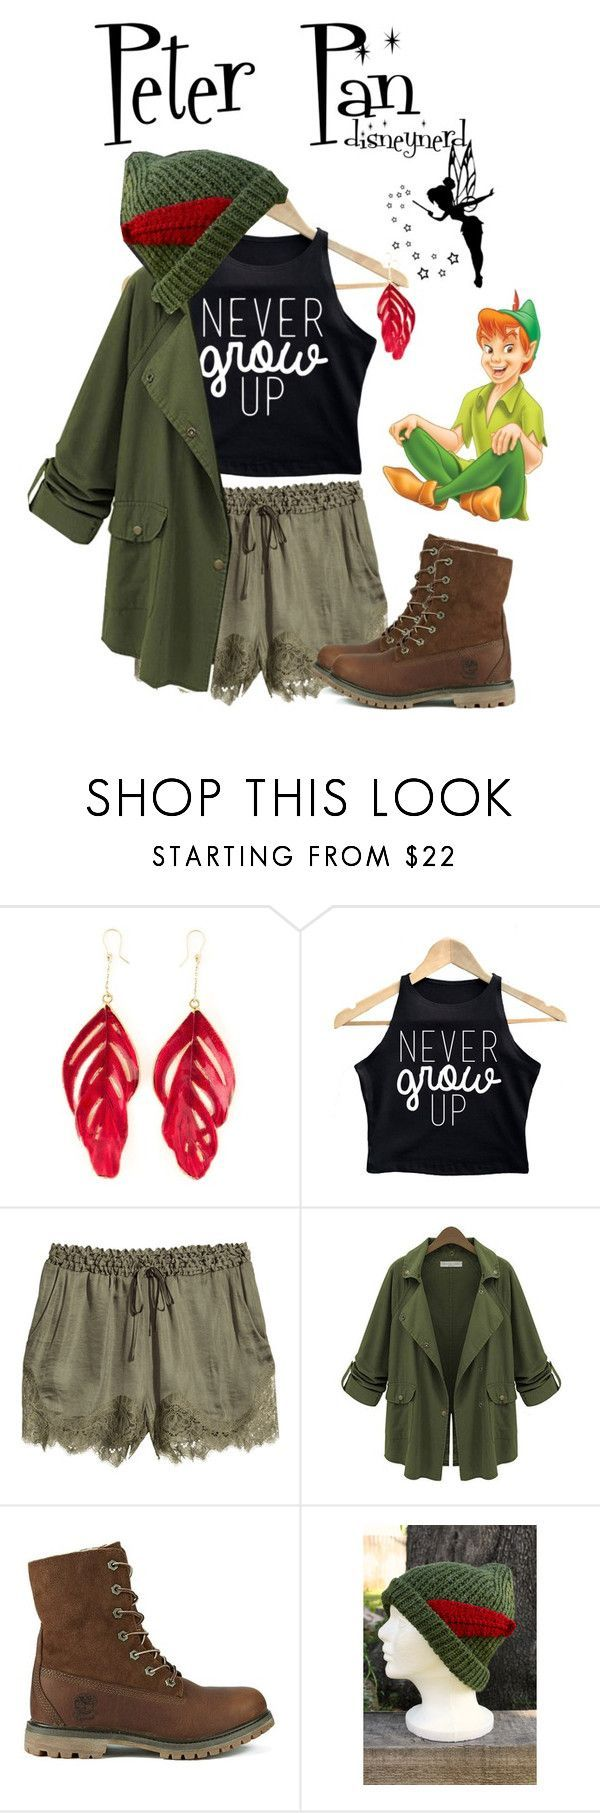 Peter Pan Disneybound by kfj16 on Polyvore featuring H&M, Timberland, Auré️️lie Bidermann and Disney